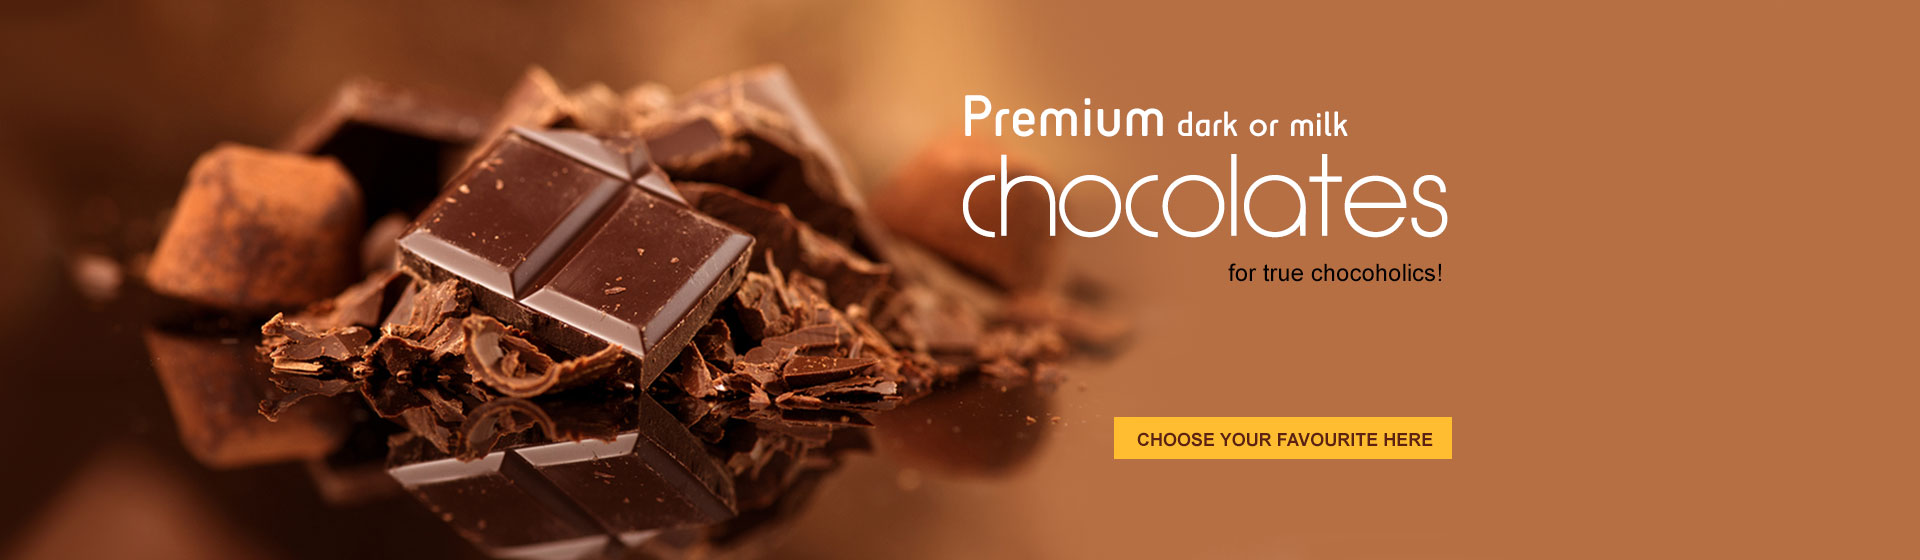 Premium dark or milk chocolates